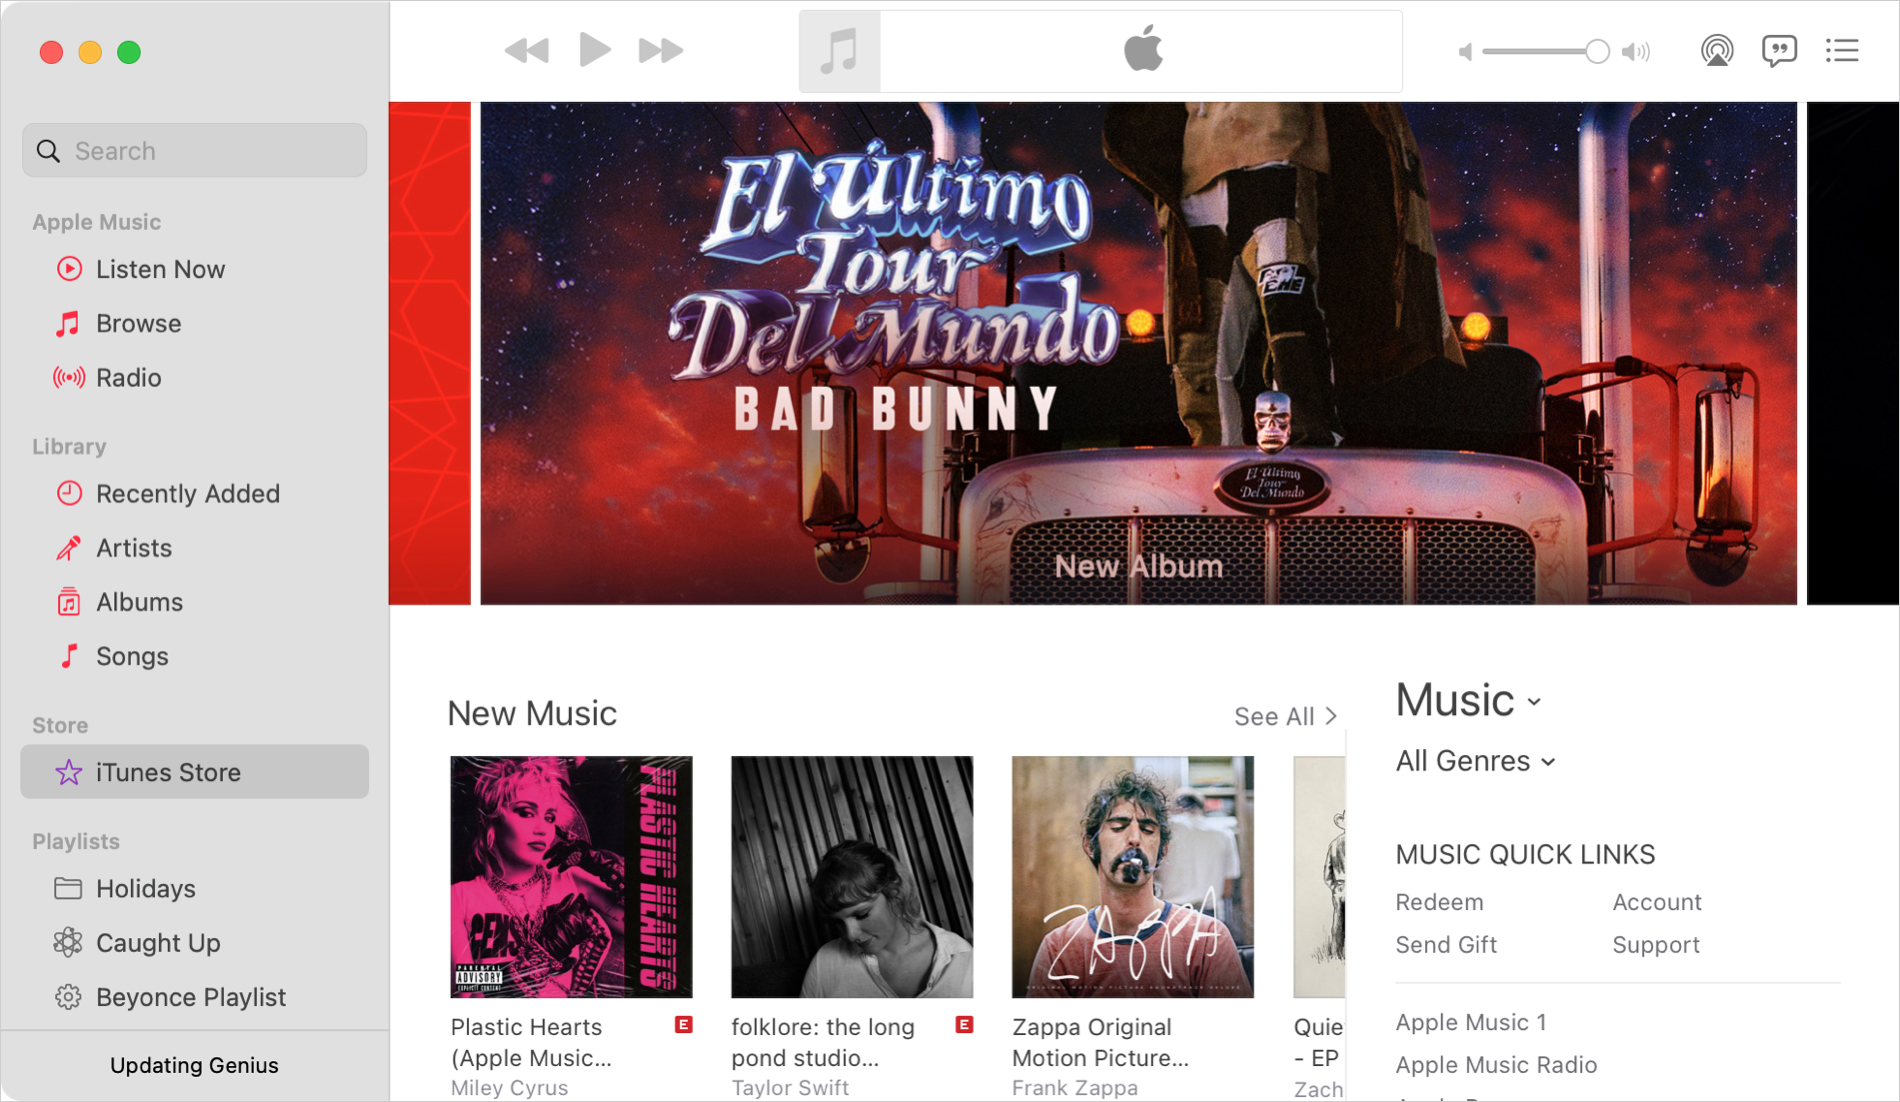 iTunes Store in Music on Mac